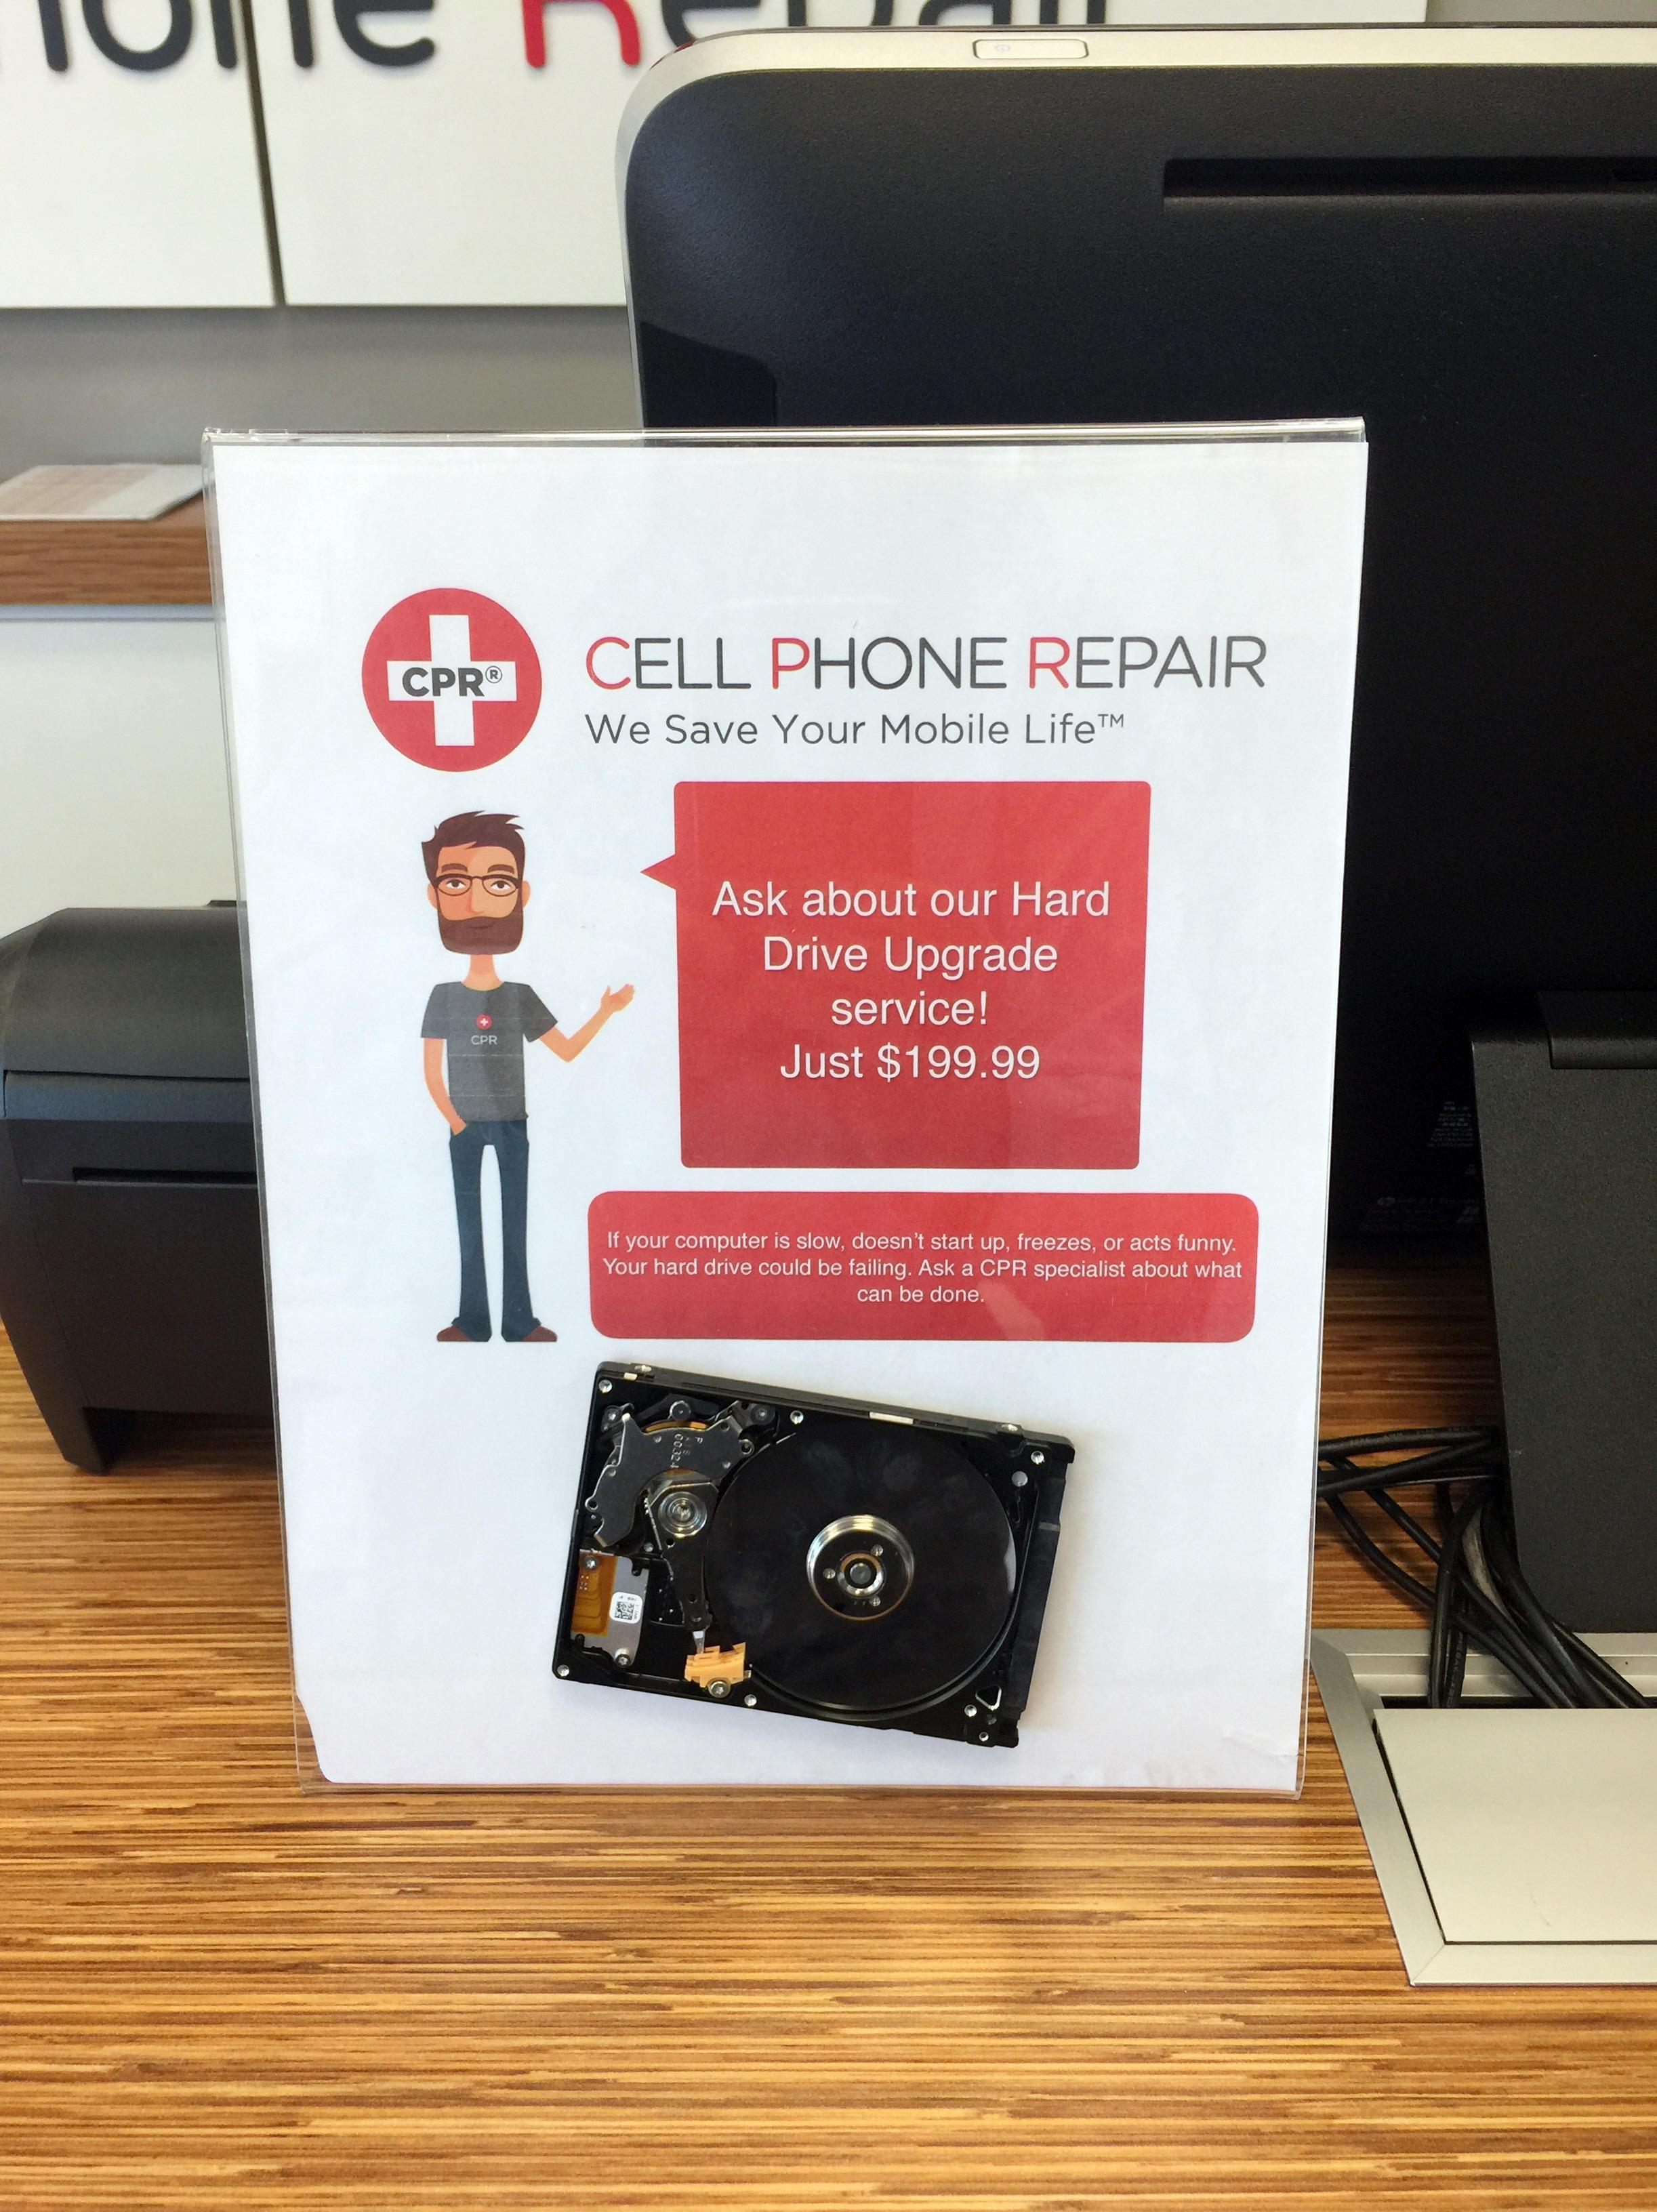 Cpr cell phone repair charlotte arboretum 8206 providence road cpr cell phone repair charlotte arboretum 8206 providence road suite 1200 the arboretum shopping center charlotte nc cell phones mapquest 1betcityfo Images